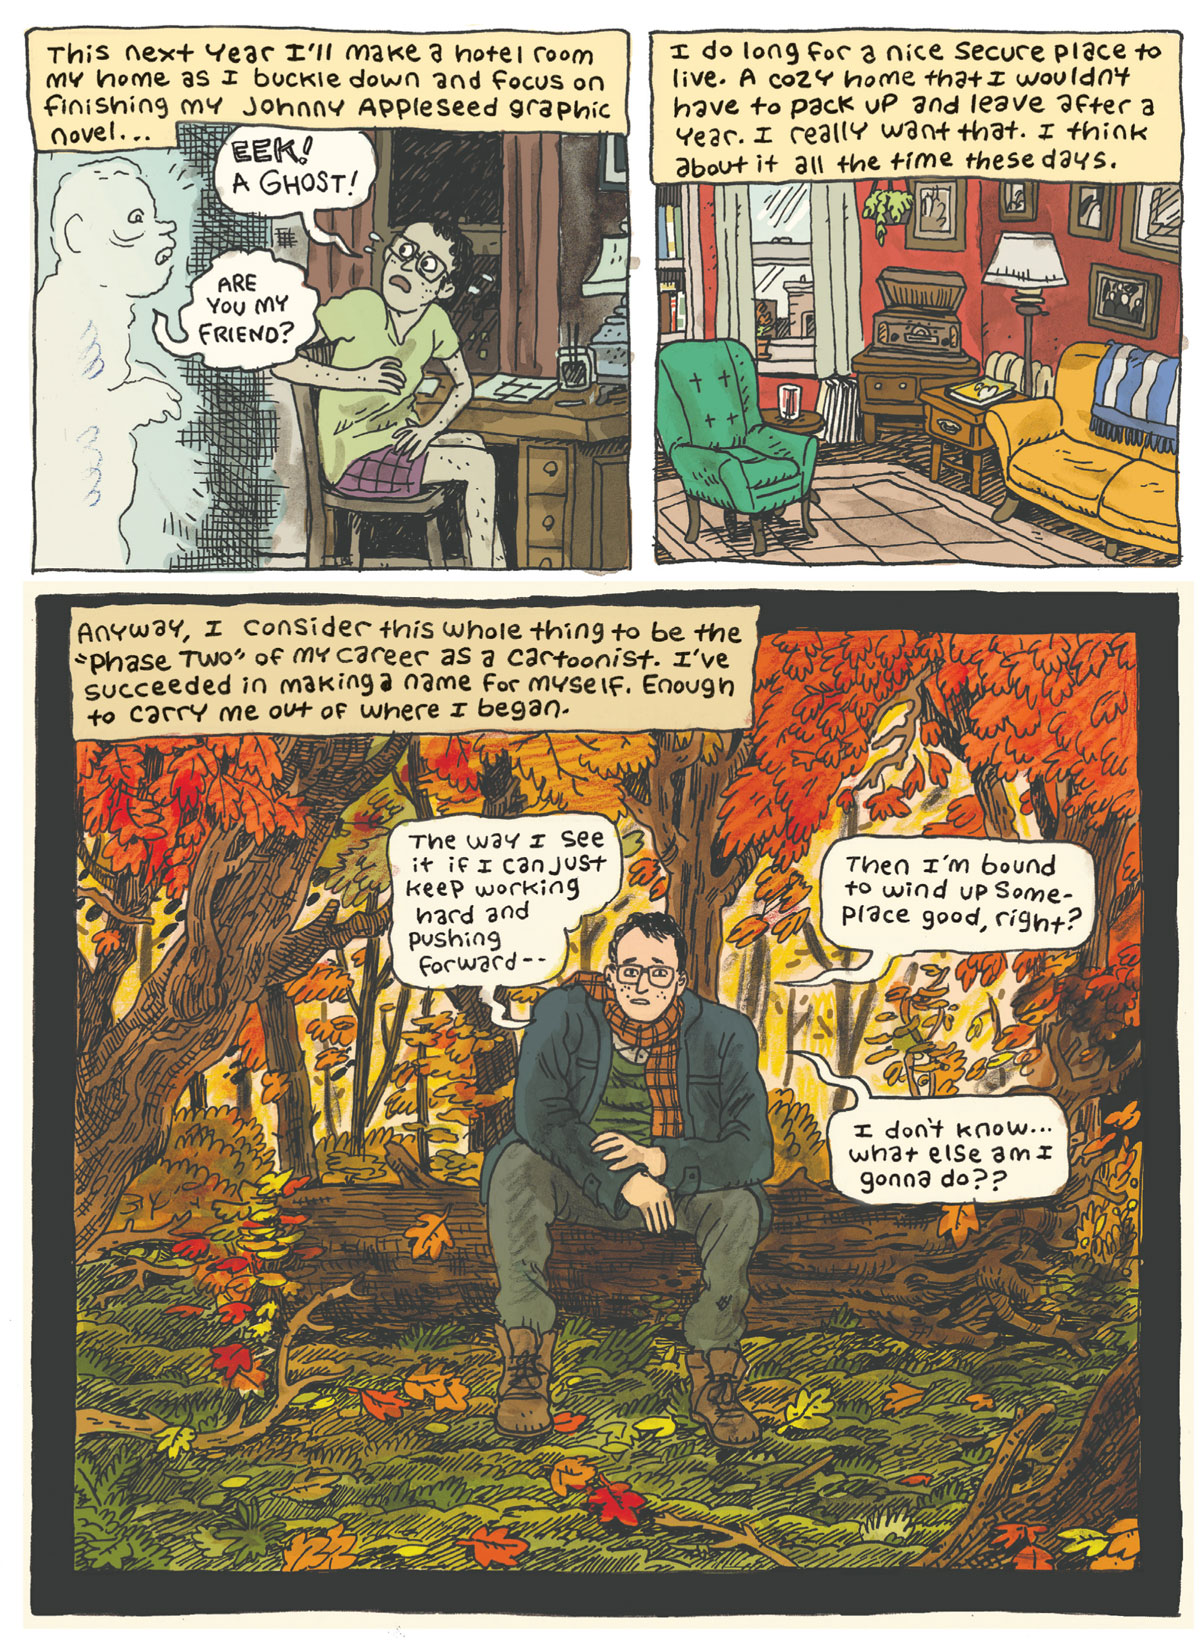 Comic by Noah Van Sciver